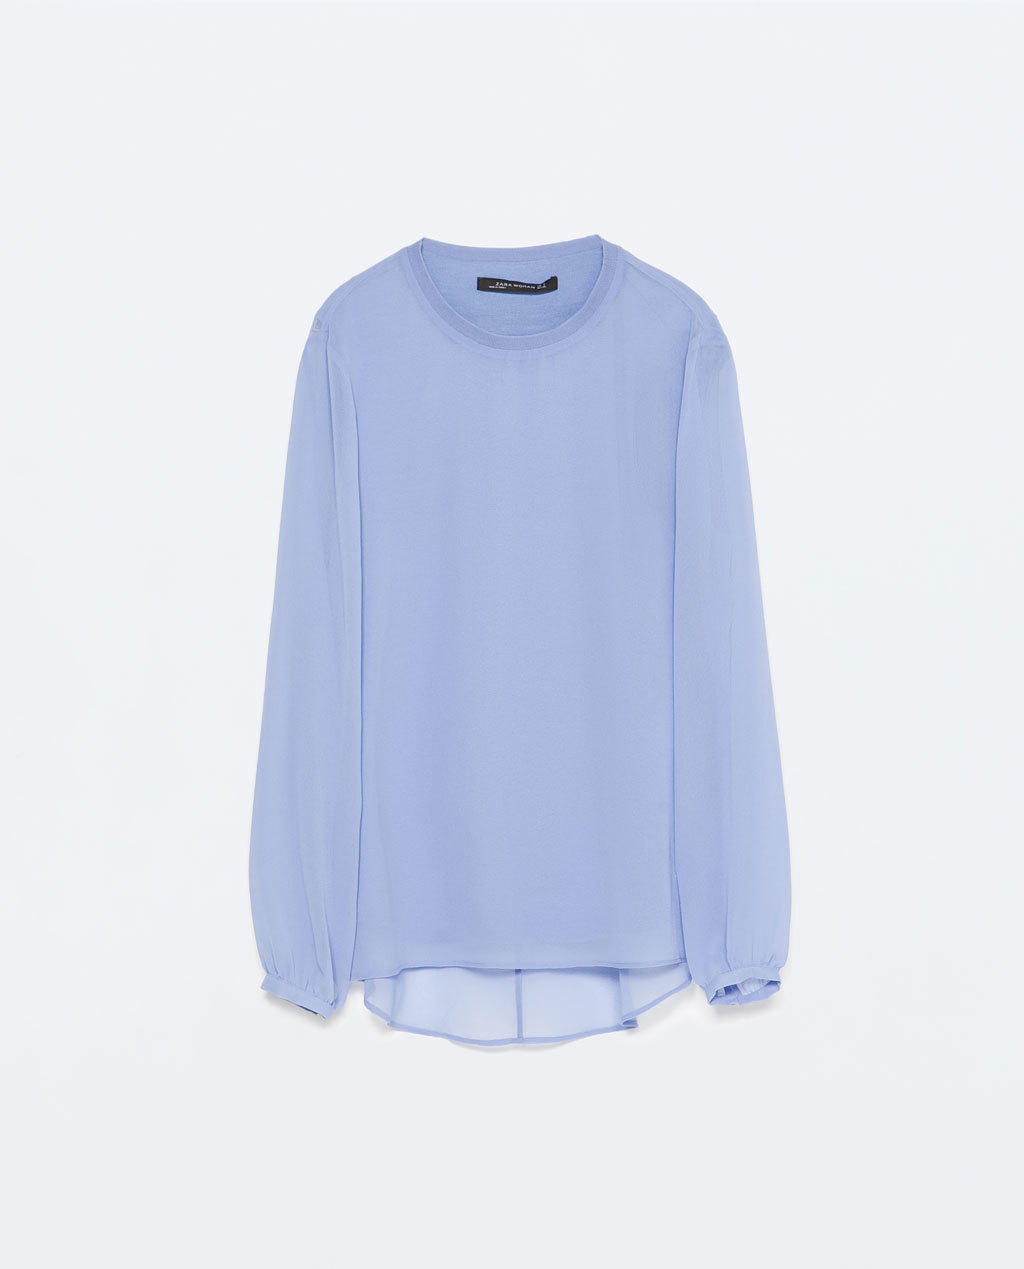 Long Sleeve Top - neckline: round neck; pattern: plain; length: below the bottom; predominant colour: pale blue; occasions: casual, work, creative work; style: top; fibres: viscose/rayon - stretch; fit: body skimming; sleeve length: long sleeve; sleeve style: standard; texture group: sheer fabrics/chiffon/organza etc.; pattern type: fabric; season: s/s 2015; wardrobe: highlight